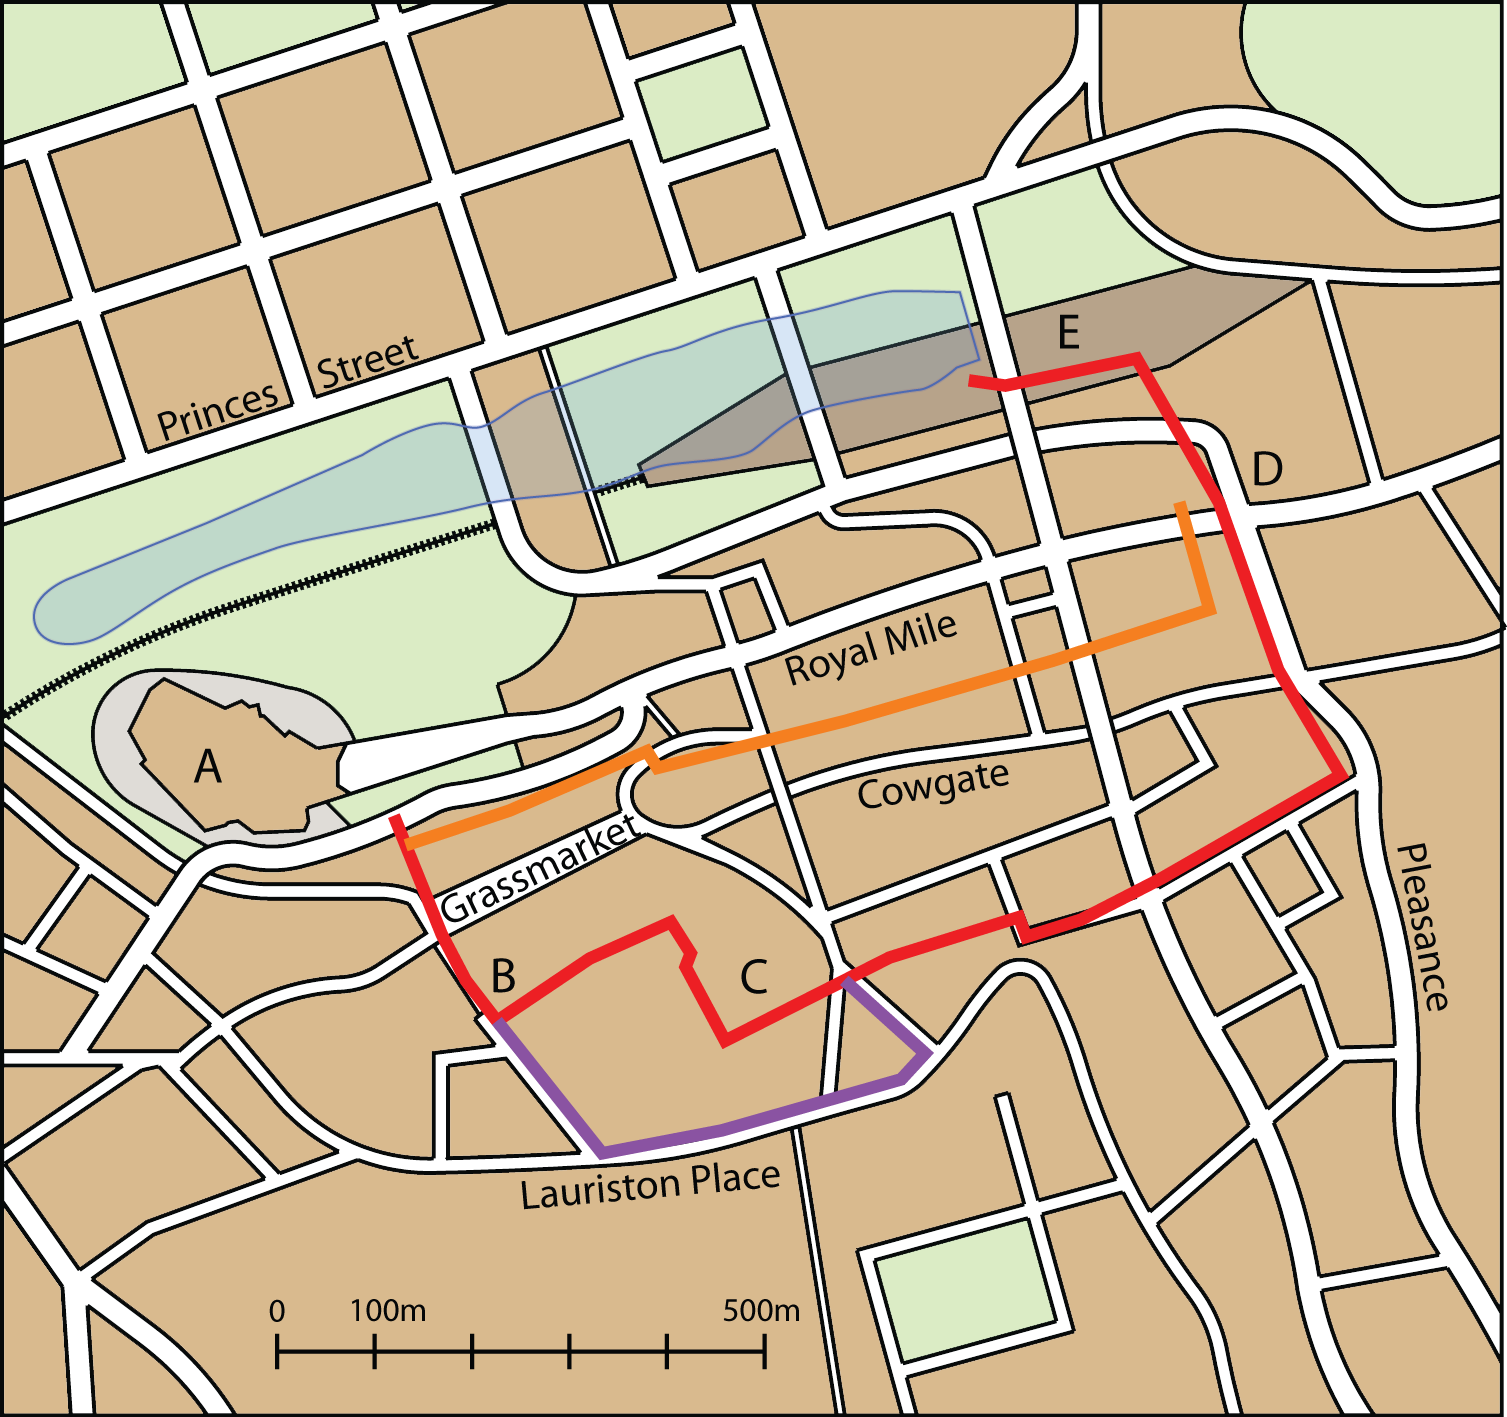 A map of central Edinburgh showing the locations of the town walls